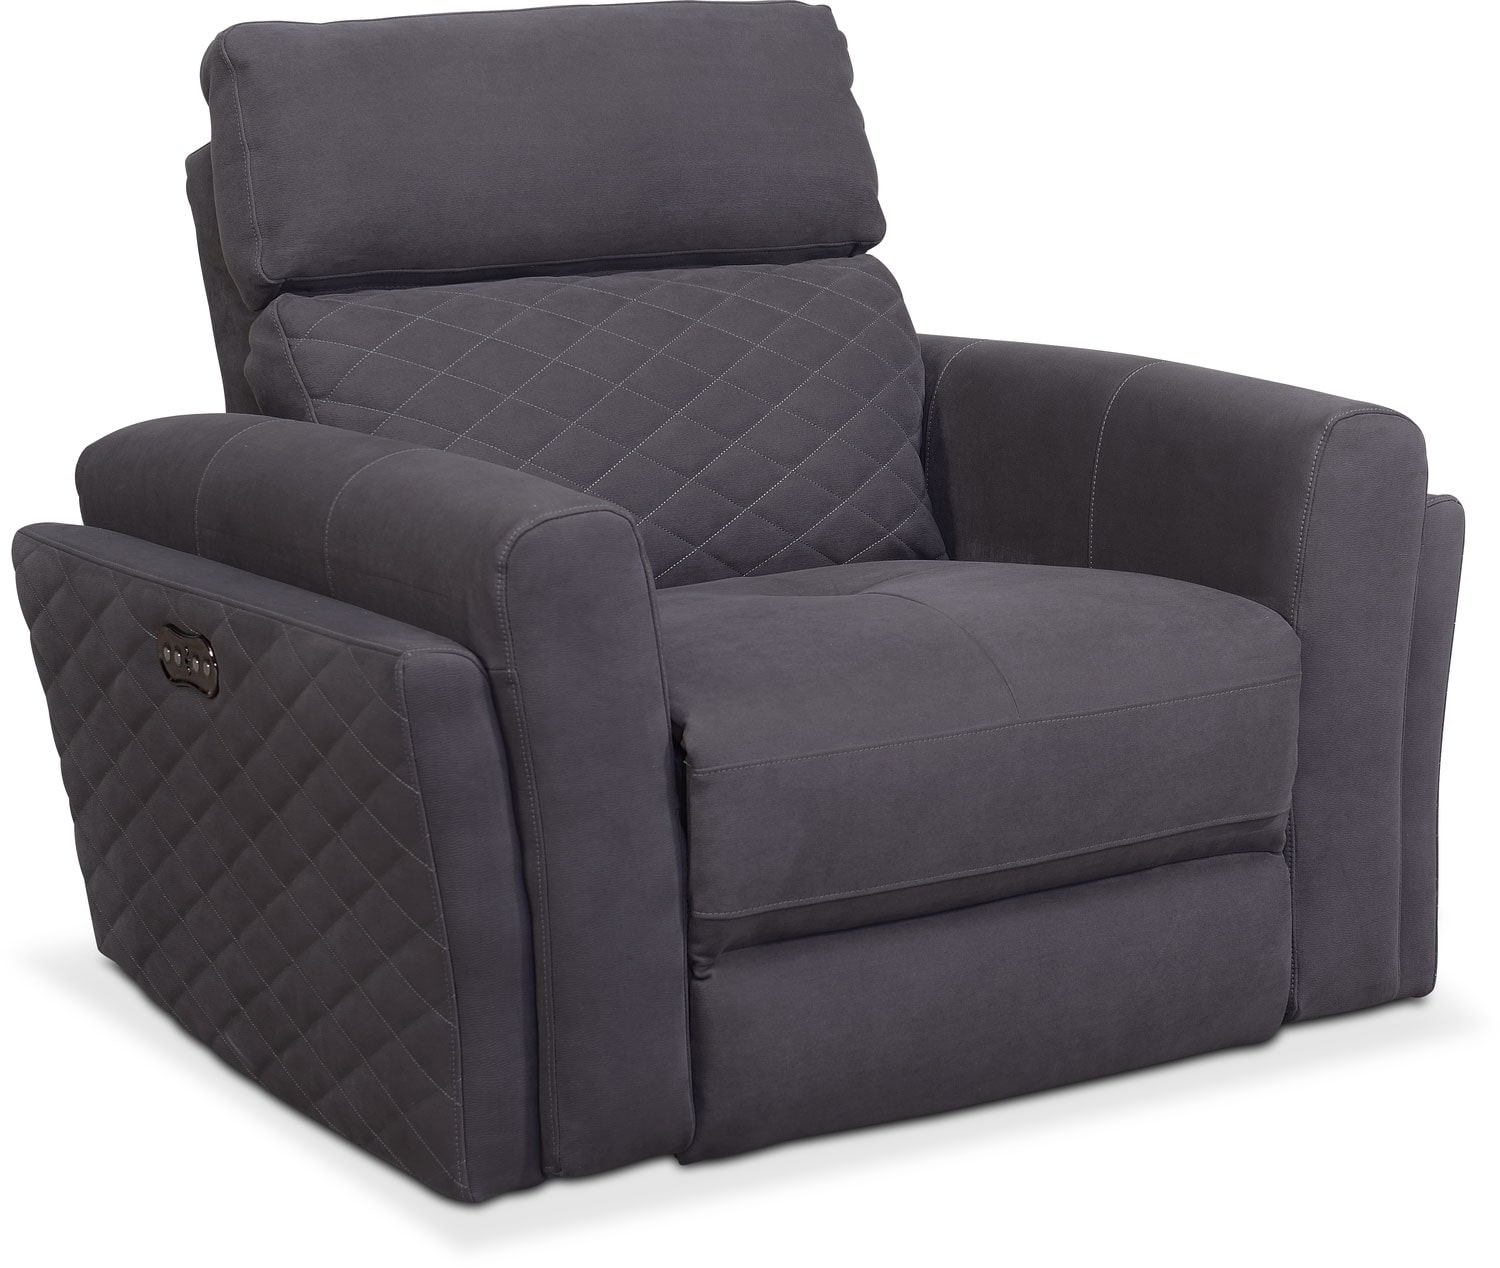 Catalina Power Recliner - Gray